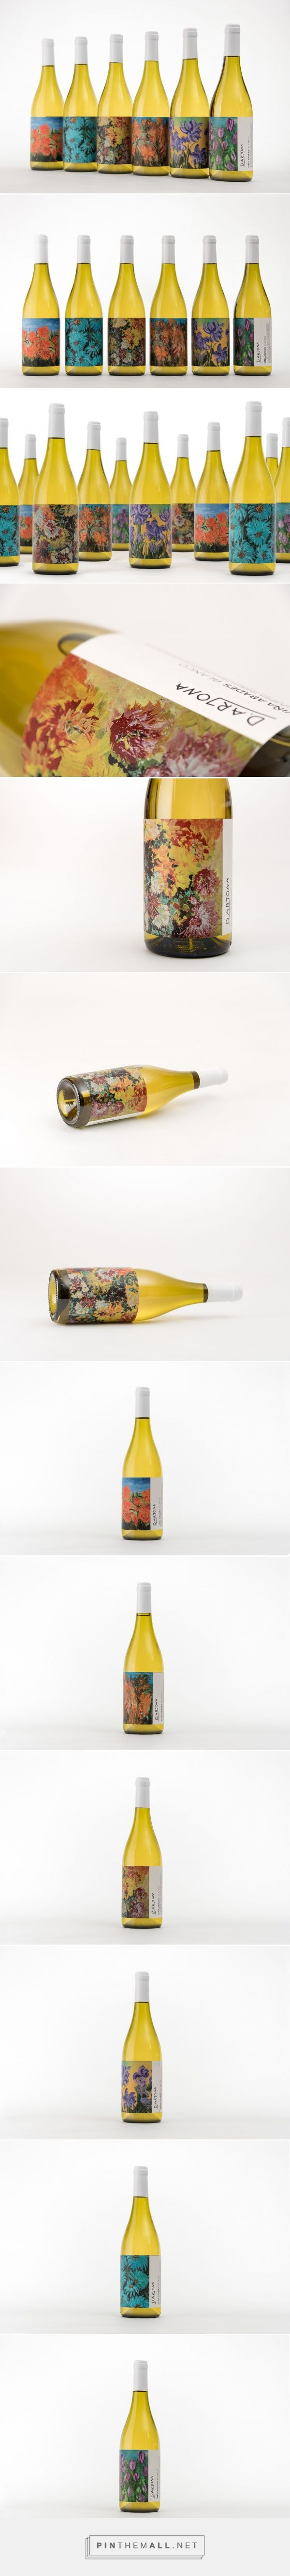 Art and Viña Abades wine packaging design by Buenaventura Estudio - http://www.packagingoftheworld.com/2017/12/art-and-vina-abades.html